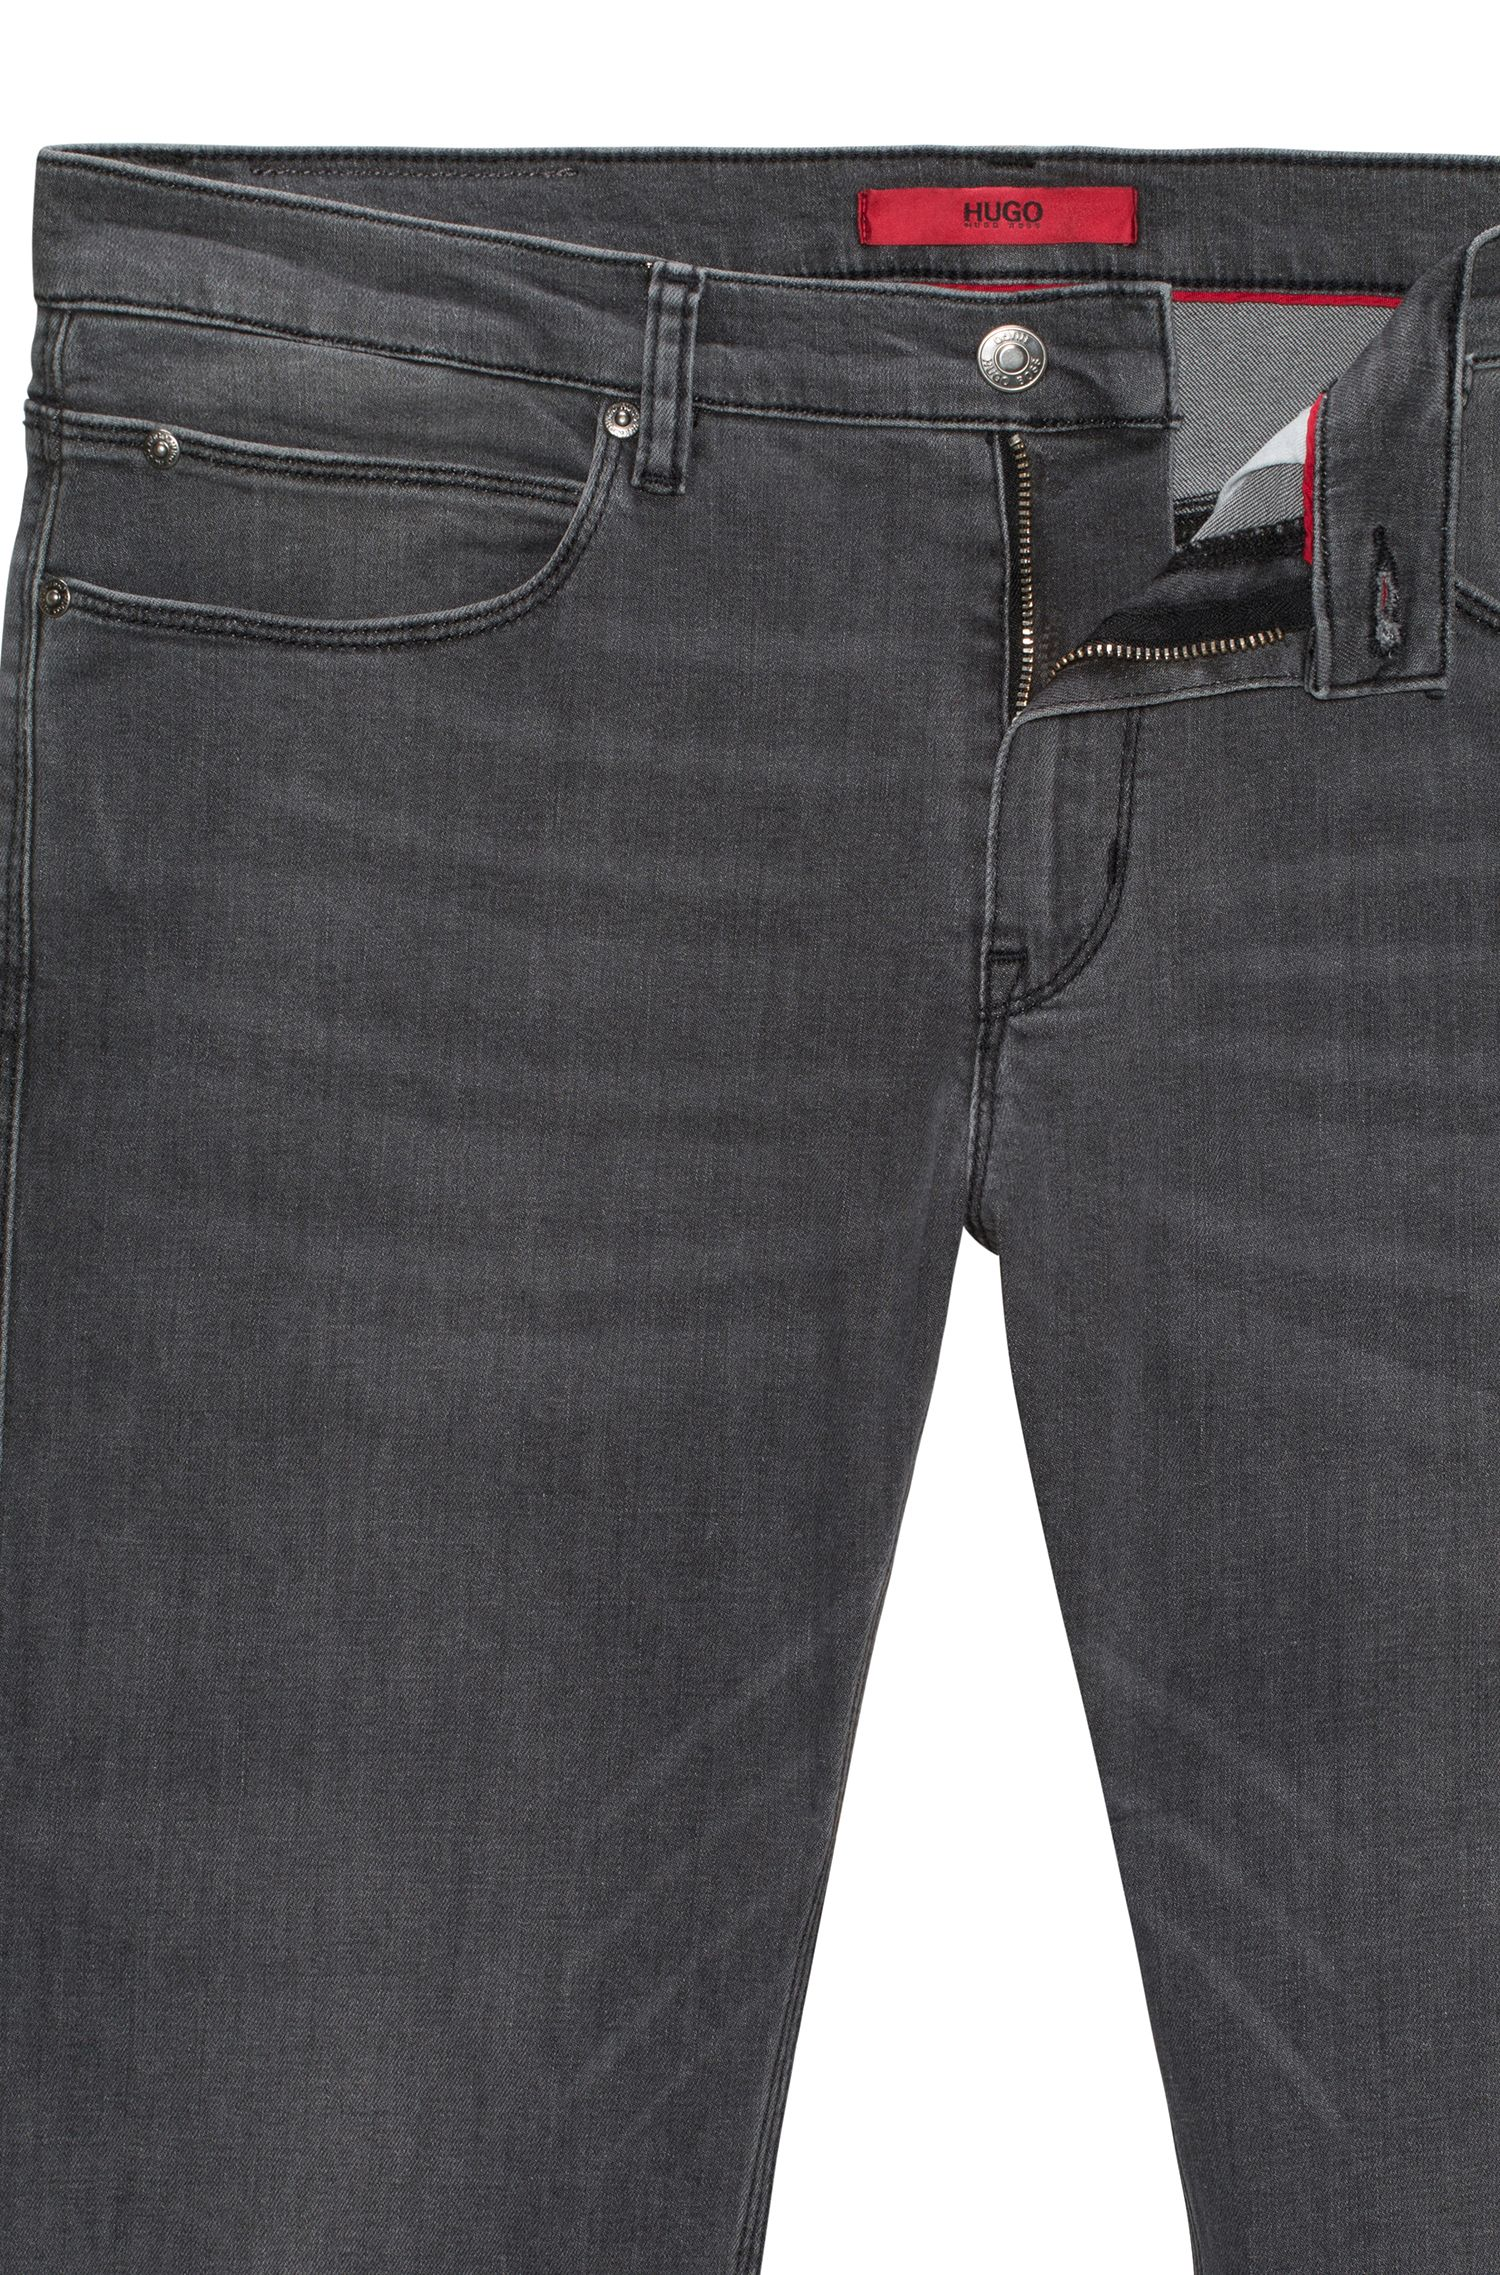 Slim-Fit Jeans aus komfortablem Stone-washed Denim